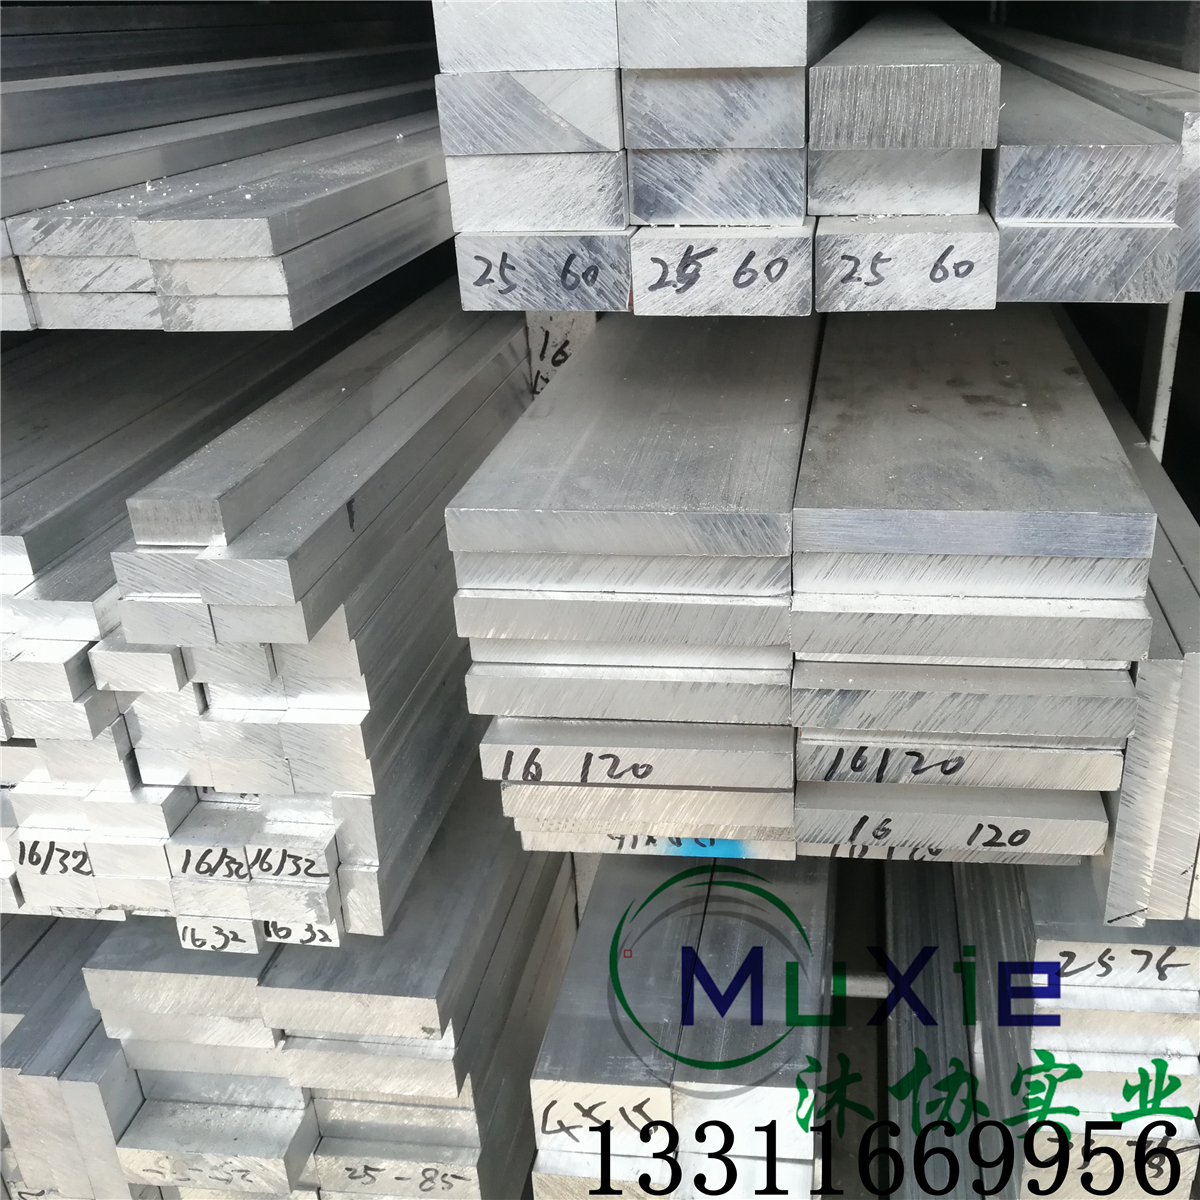 High quality 6063 Aluminium bars for aluminium bar profiles. Spot aluminium bars for aluminium bar can be cut and customized.